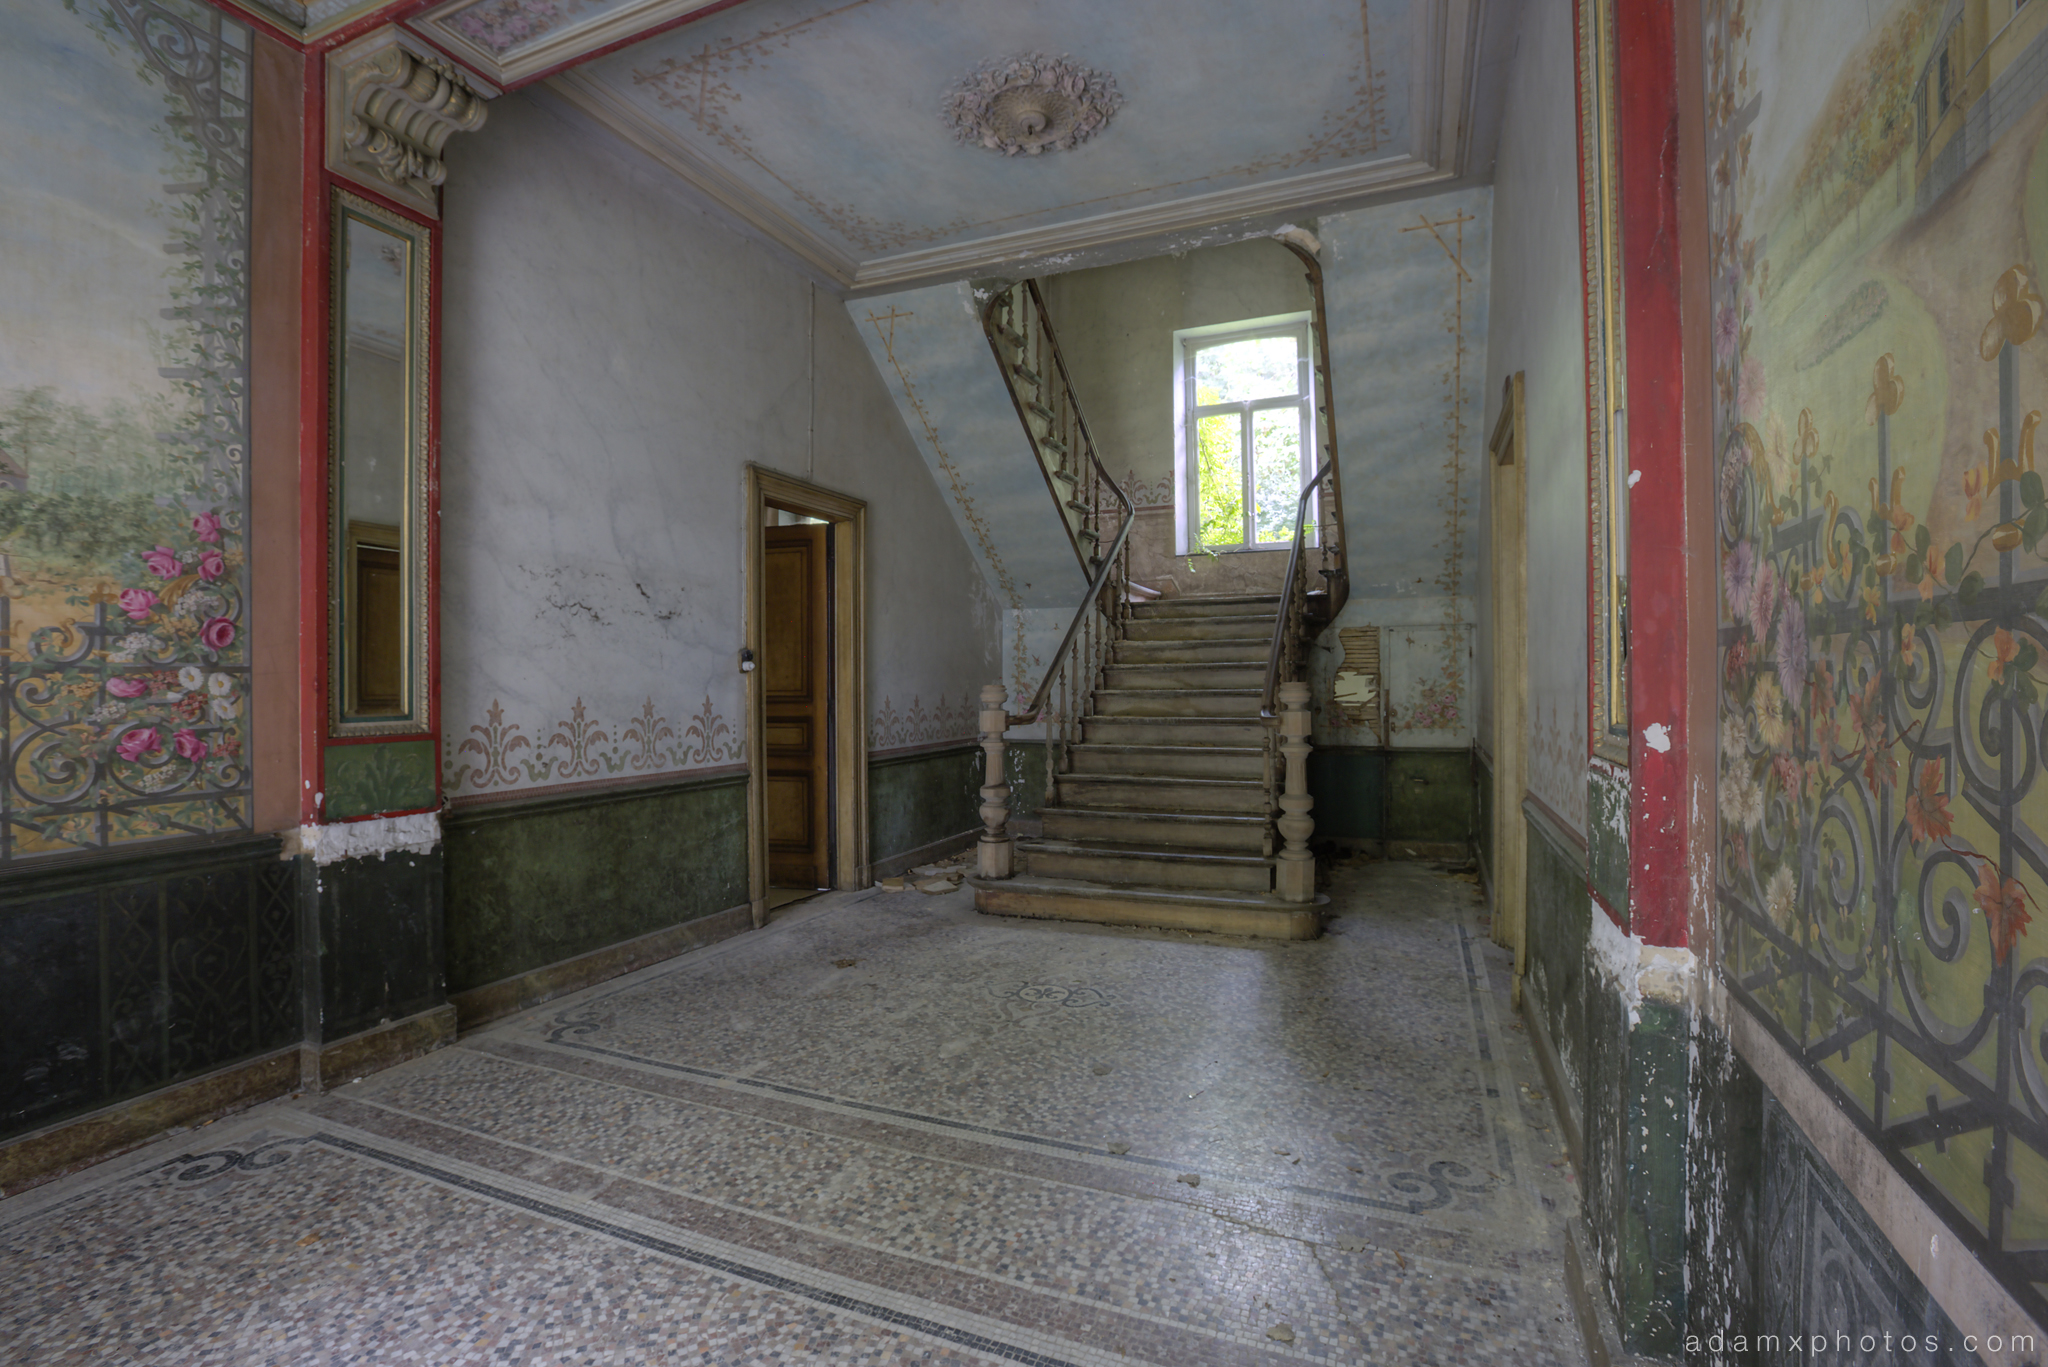 Downstairs hallway stairs staircase bannisters curved paintings painted Adam X Urbex UE Urban Exploration Belgium Chateau d'Ah house maison villa townhouse abandoned derelict unused empty disused decay decayed decaying grimy grime